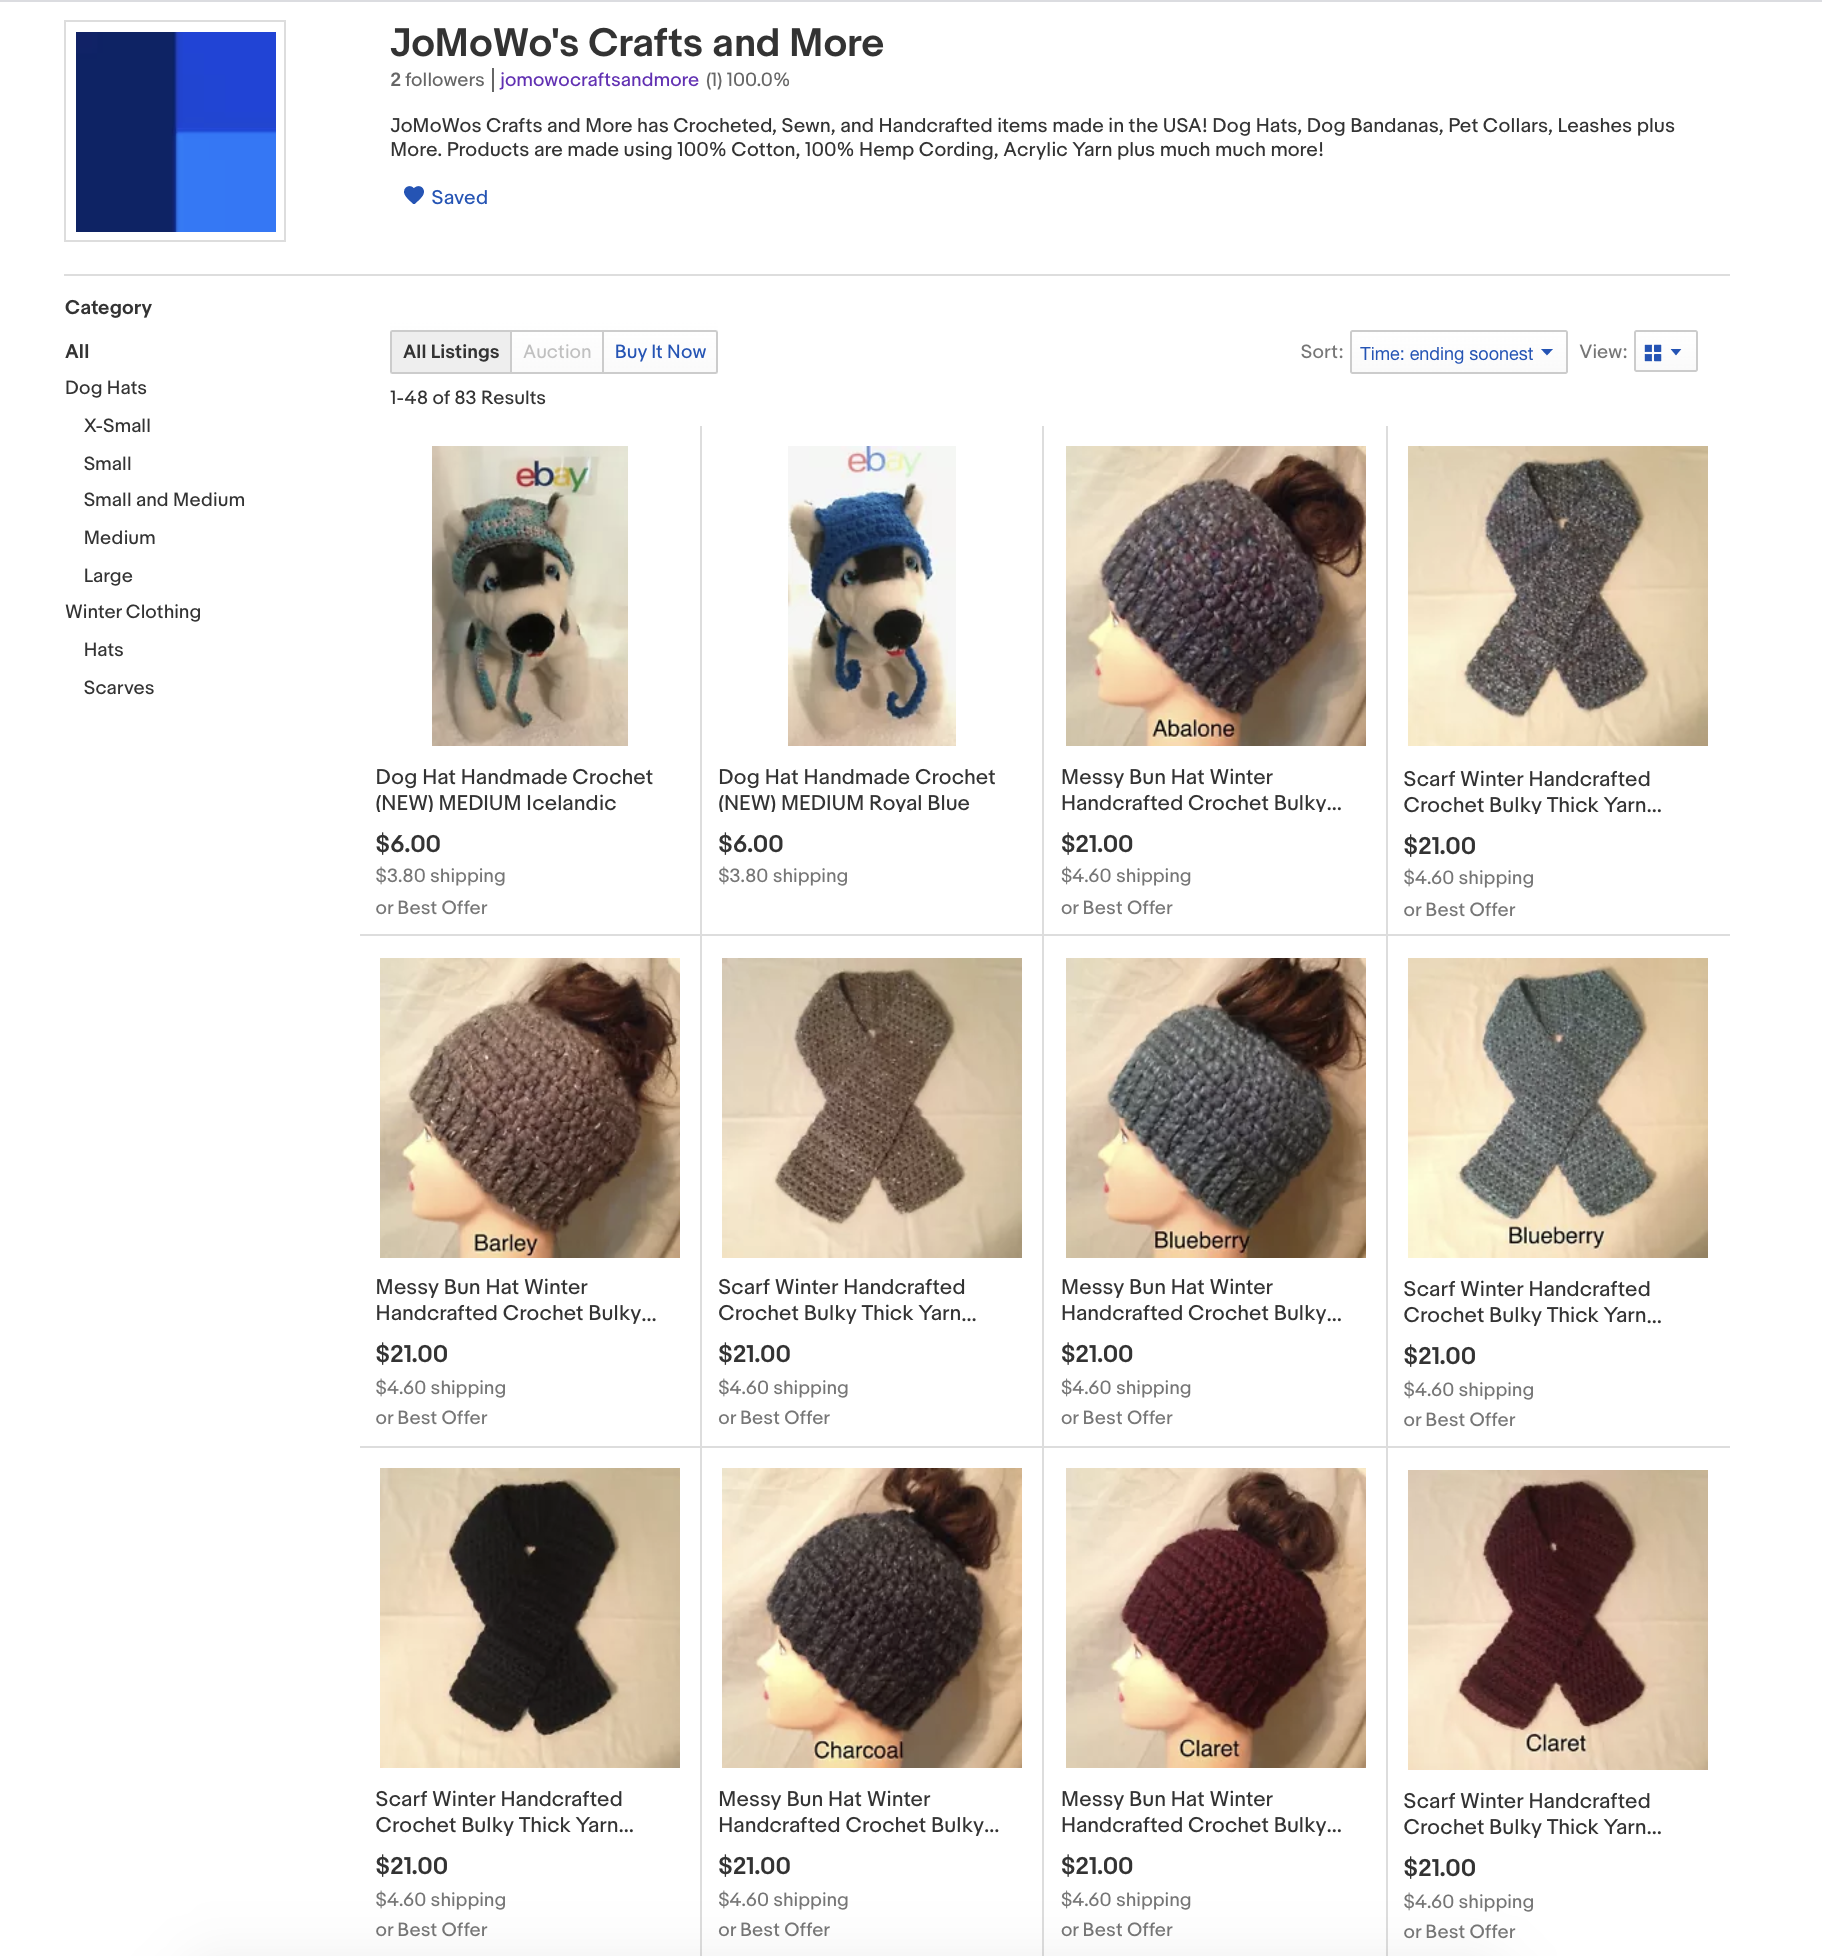 JoMoWos Crafts and More Ebay Store August 15th 2020 1